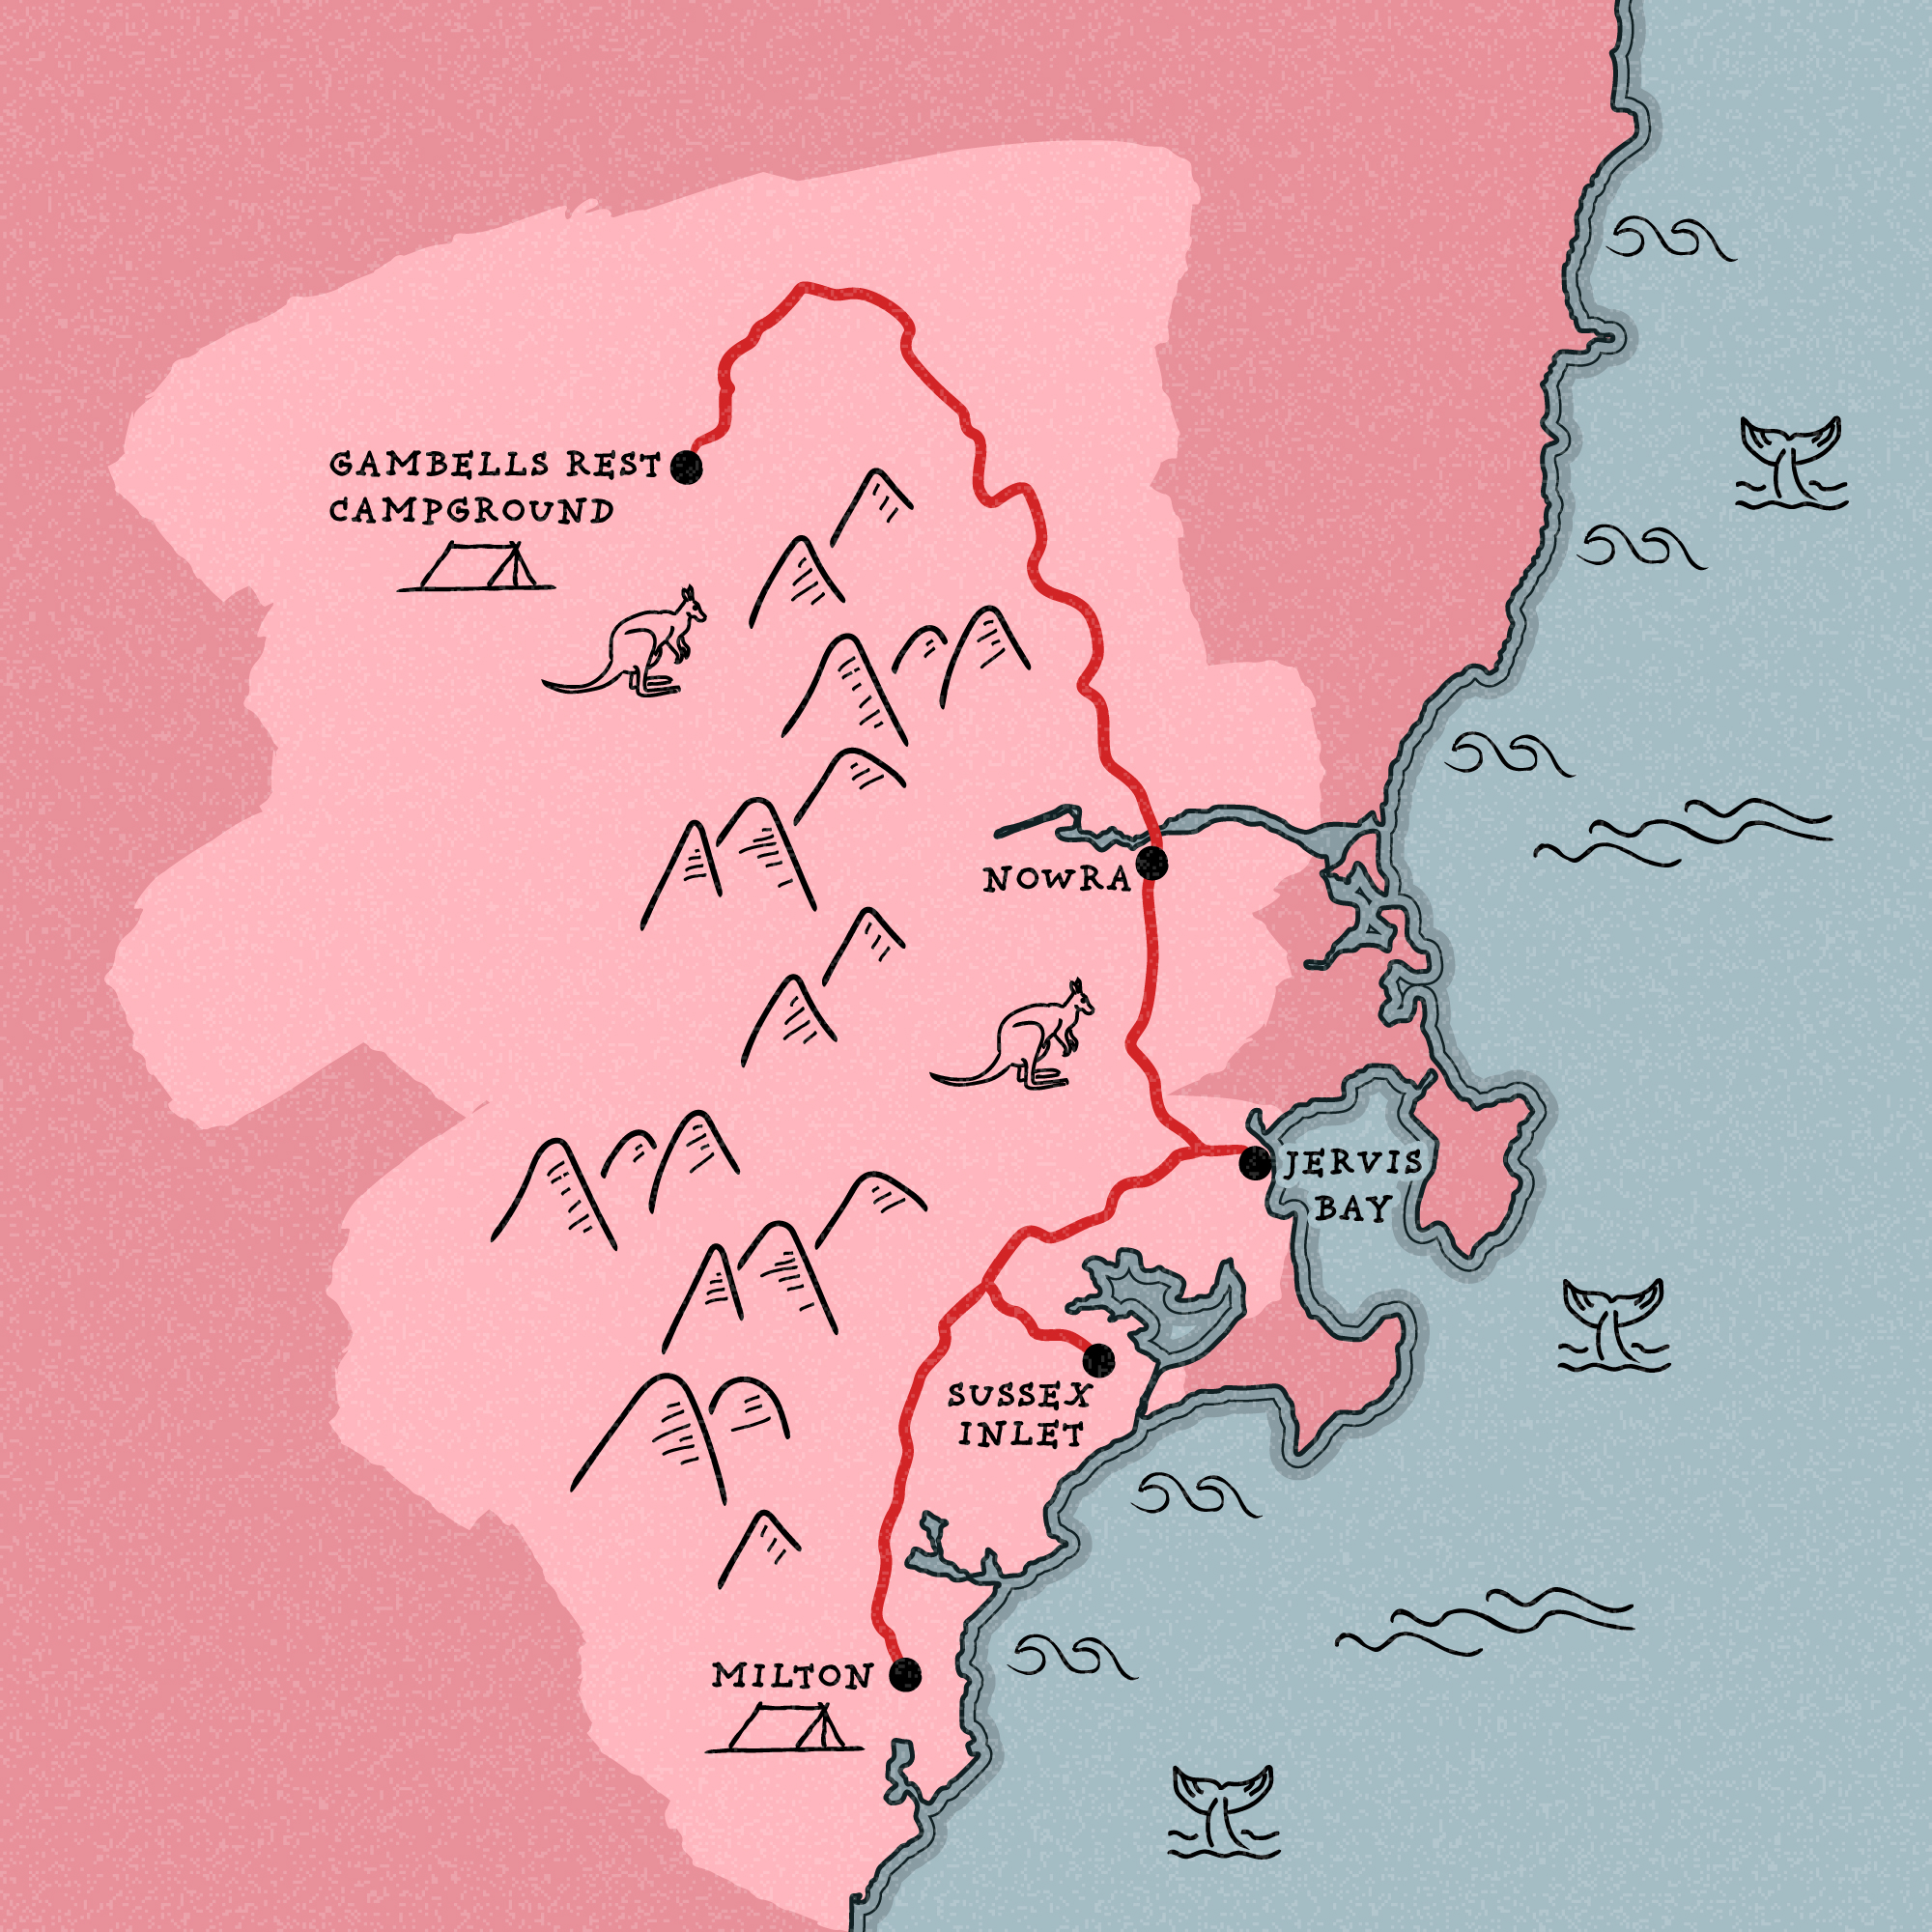 Shoalhaven illustrated itinerary map